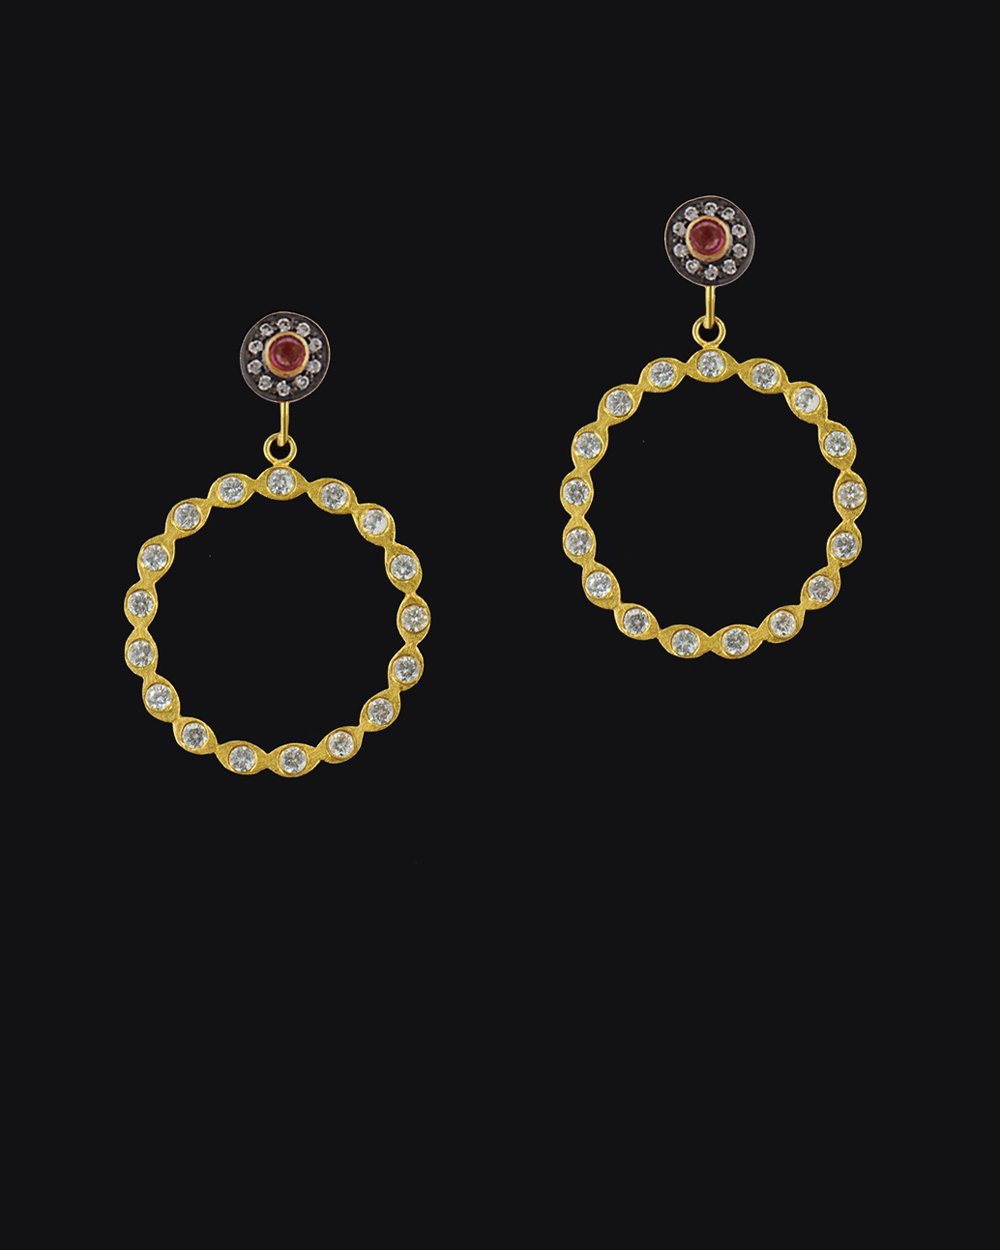 Eternity Hoop Earrings Gold Vermeil with Crystals